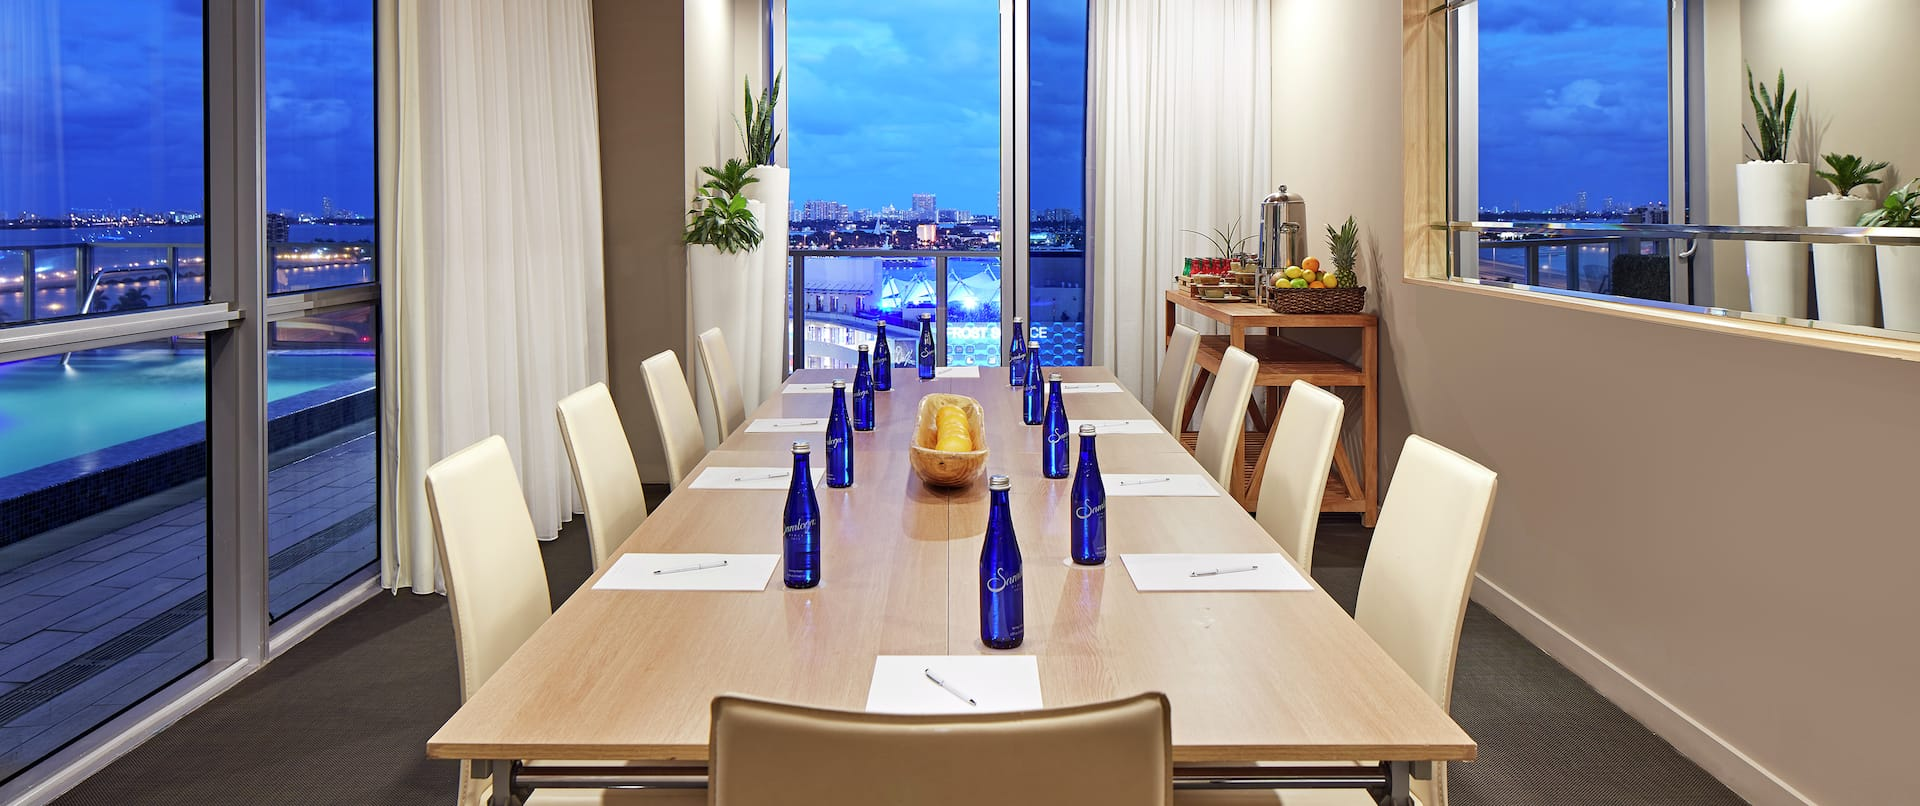 Boardroom with Table, Chairs, and Outside View